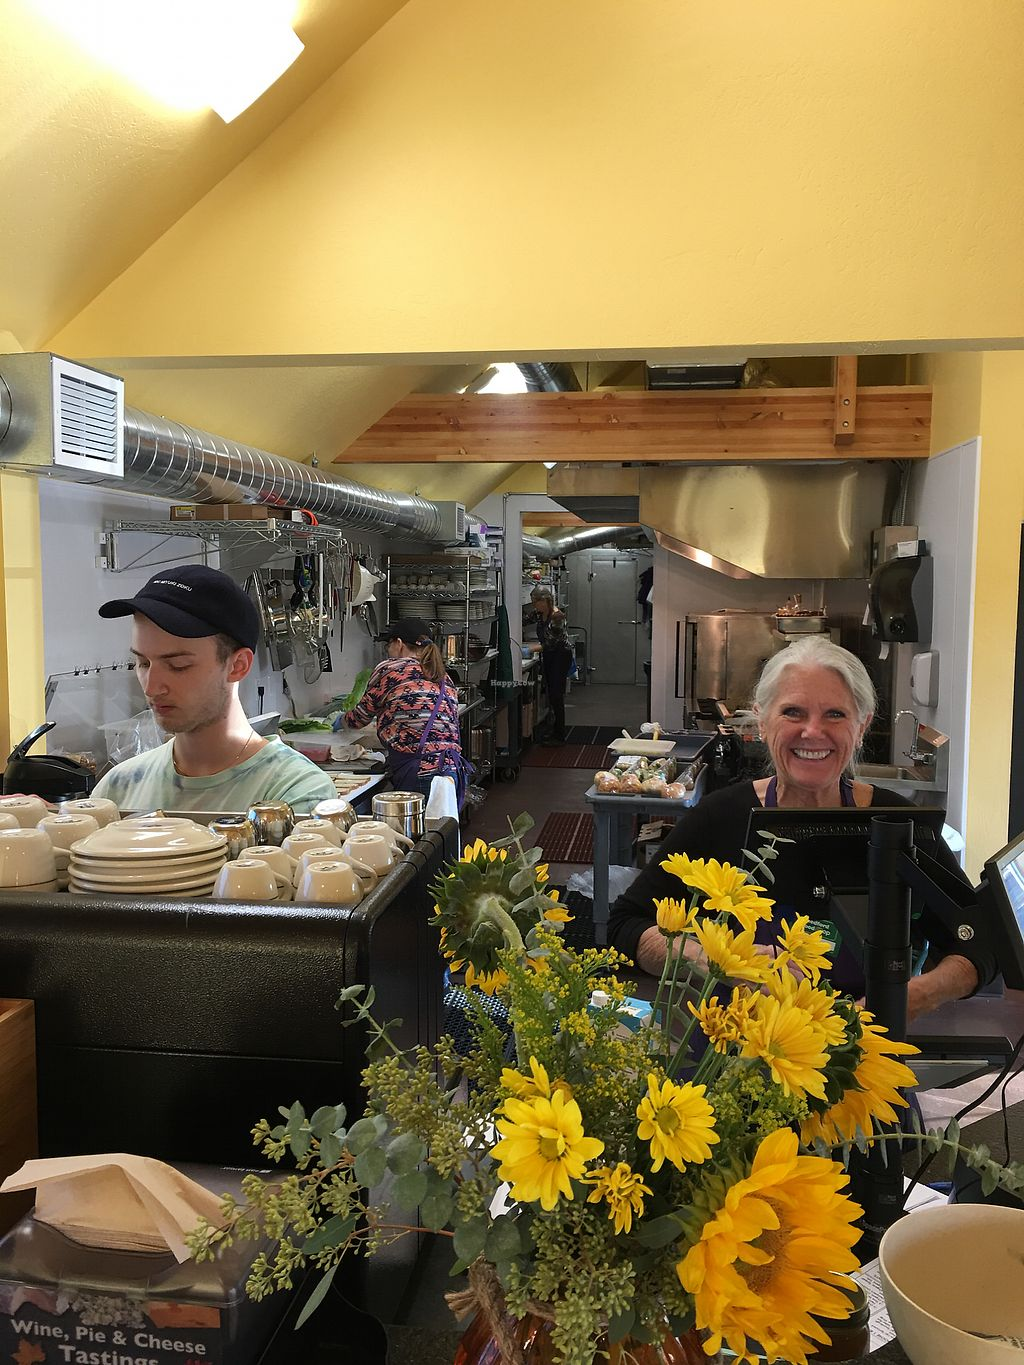 """Photo of Medford Food Co-op & The Cafe  by <a href=""""/members/profile/fbatzer%40gmail.com"""">fbatzer@gmail.com</a> <br/>The bright and sunny Cafe' at the Medford Food Co-op. So excited to see so many vegan options on their menu.  <br/> November 14, 2017  - <a href='/contact/abuse/image/77991/325786'>Report</a>"""